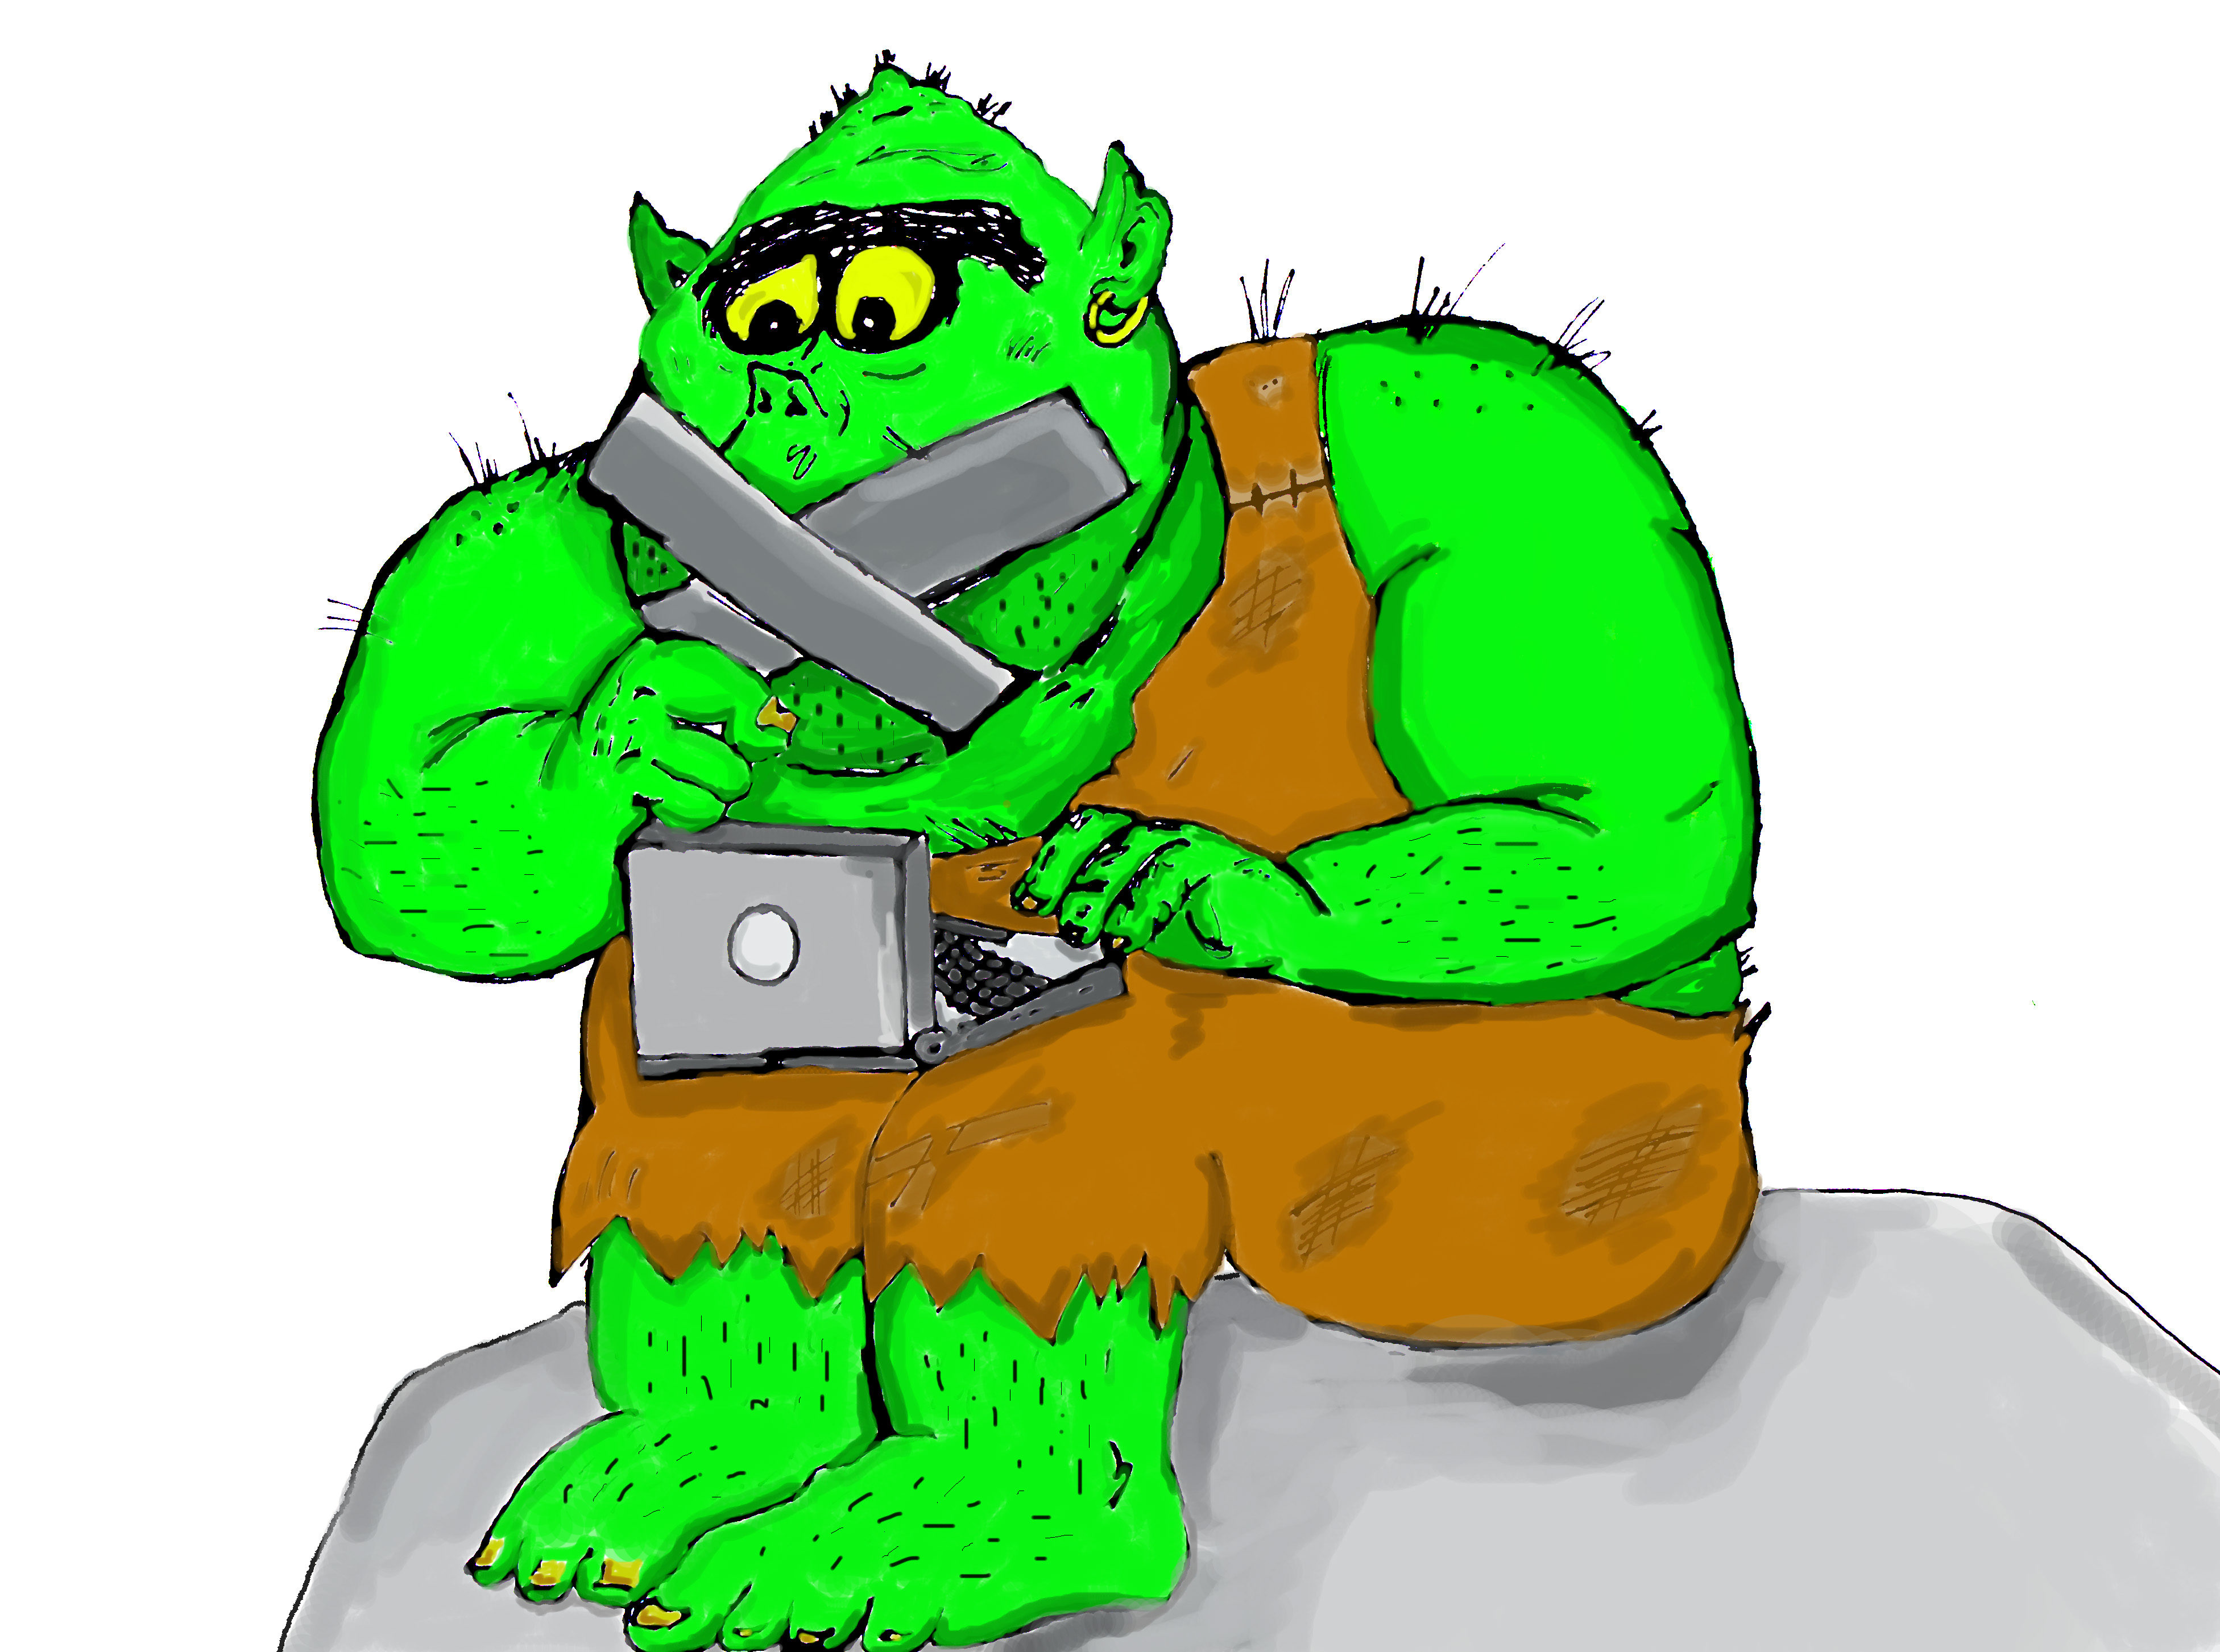 A green troll types on a laptop while his mouth is taped up.